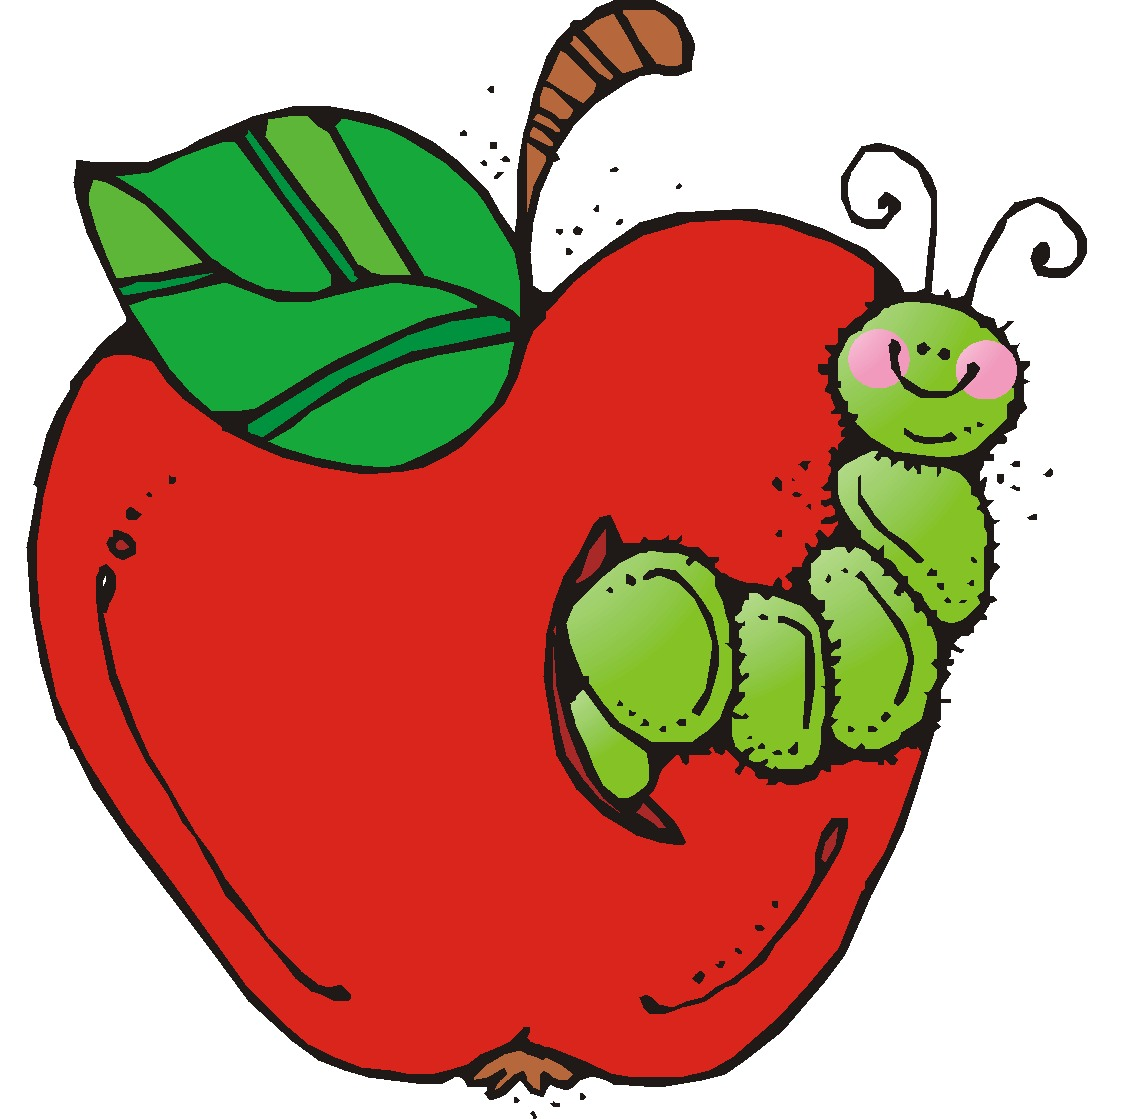 1125x1119 Teacher Apple Border Clipart Free Images